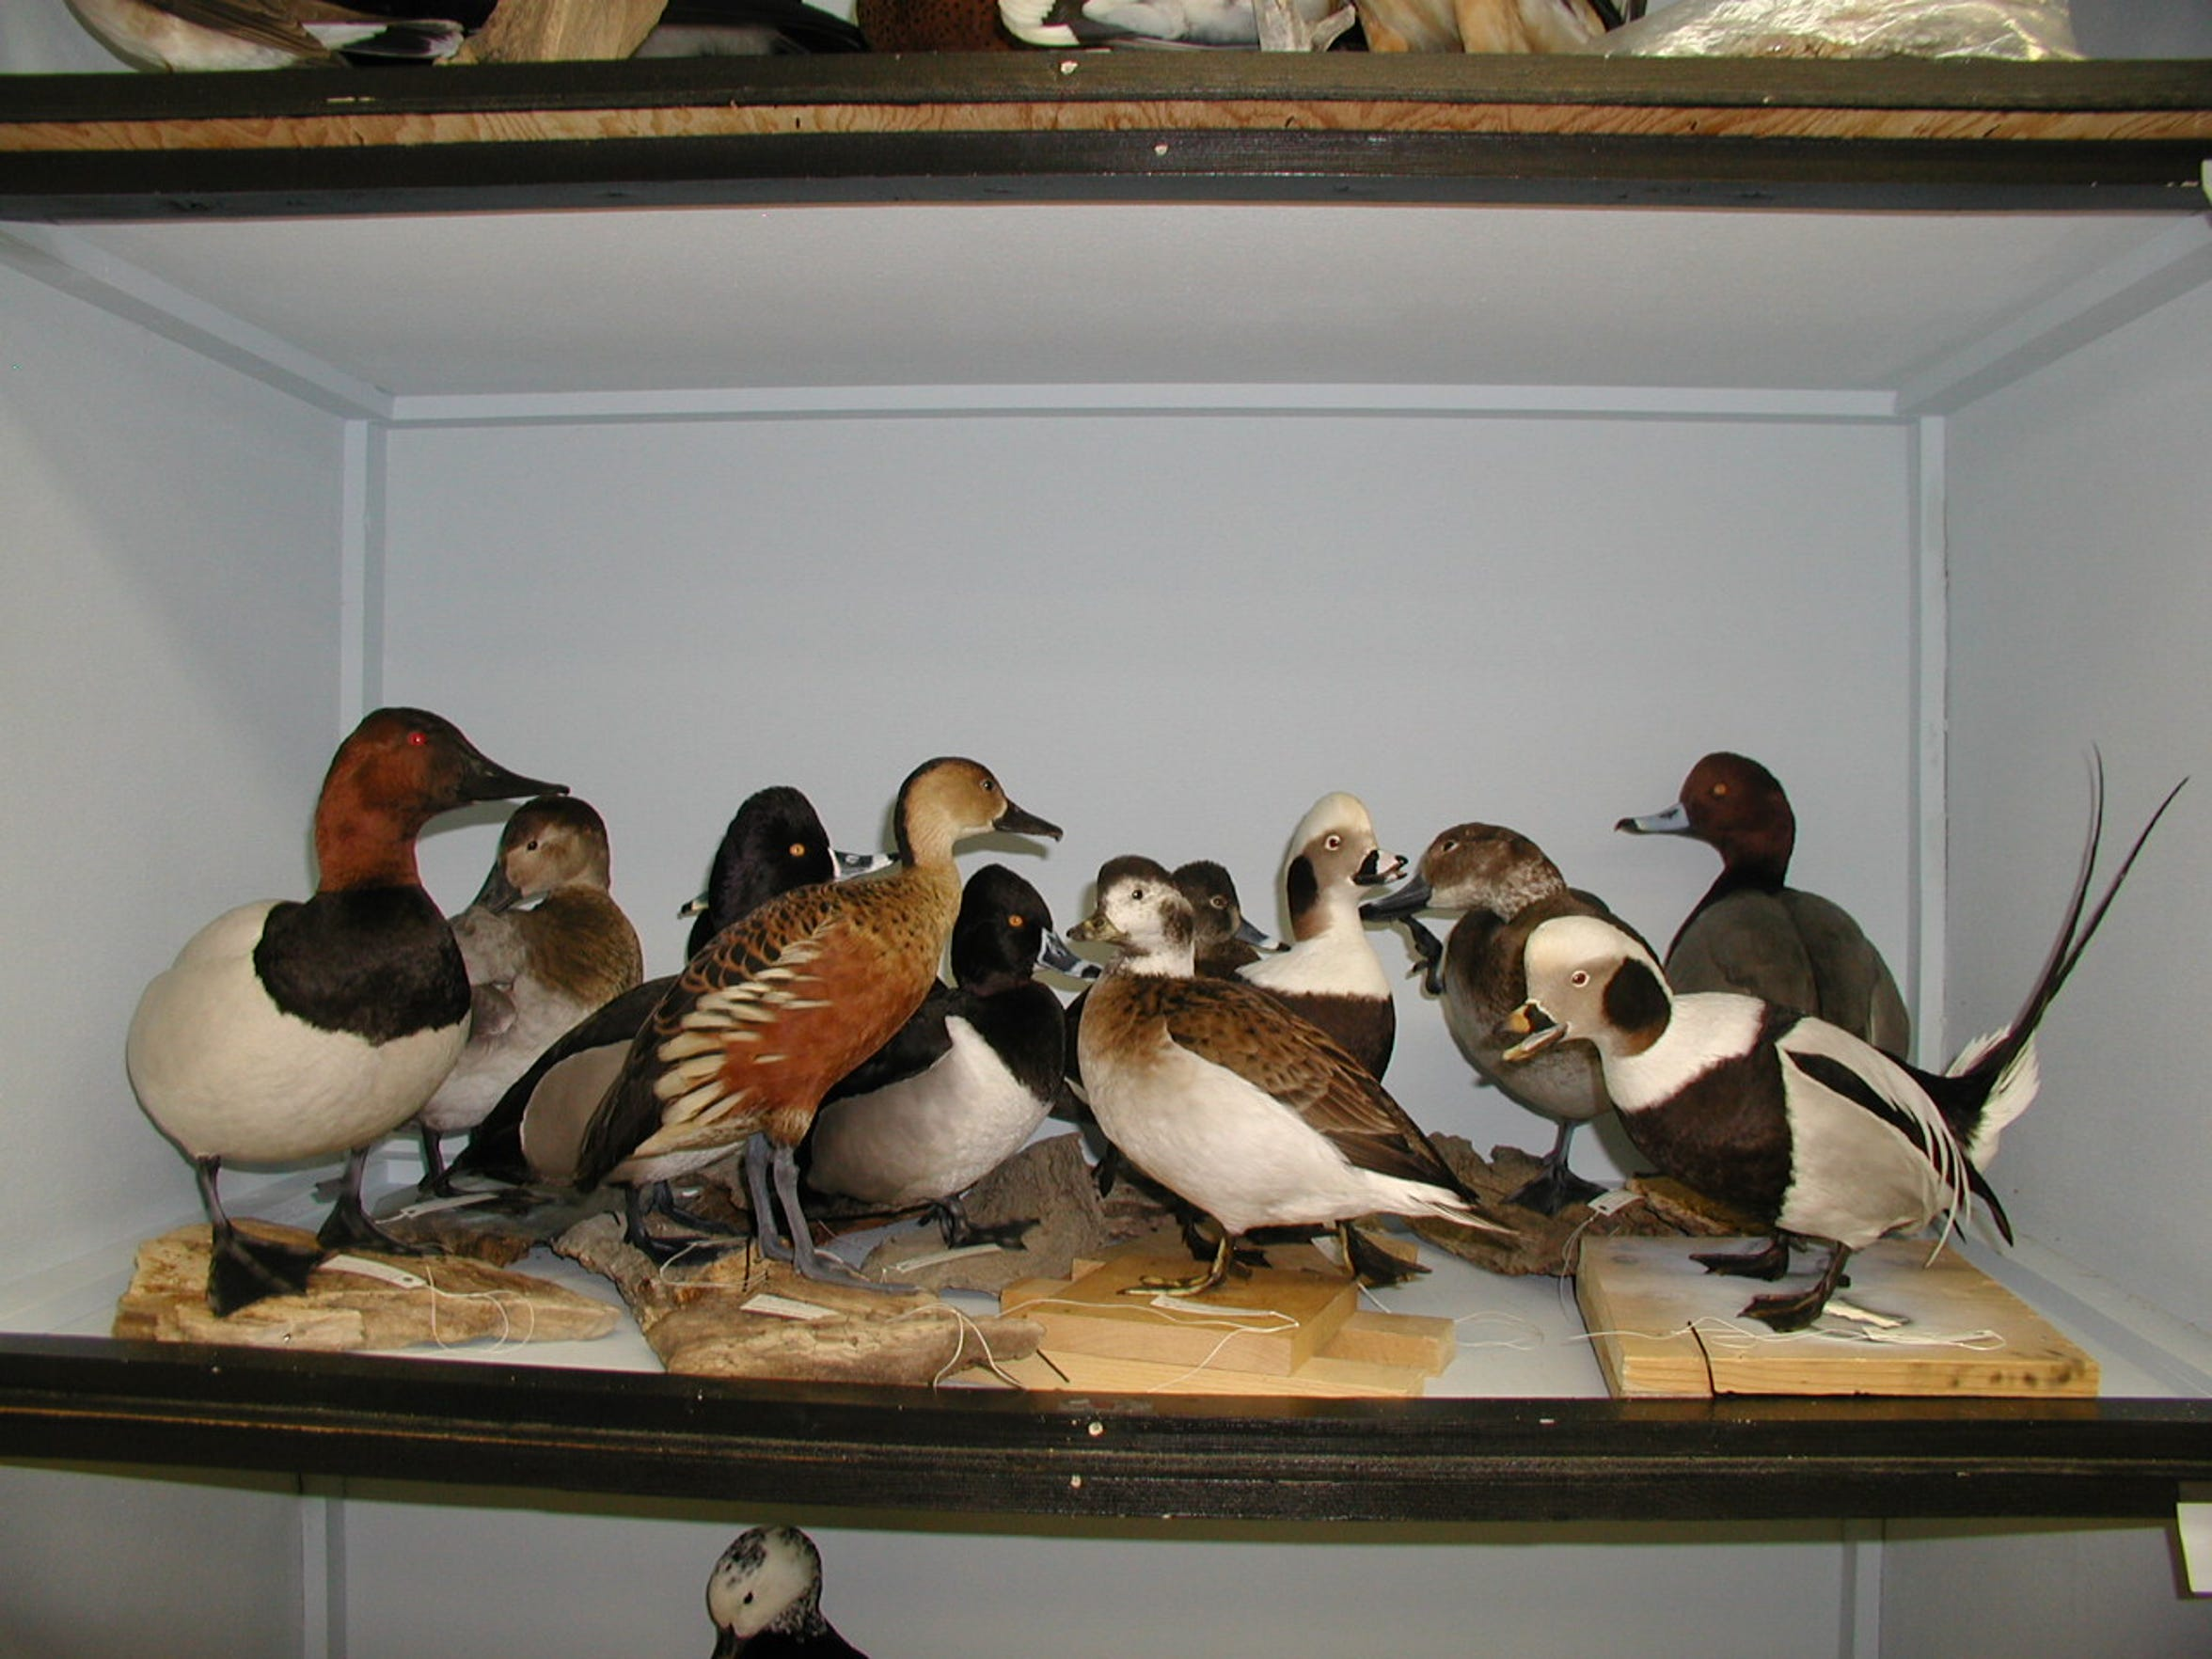 When the Welder Wildlife Foundation received the Bowman collection many were crowded in wooden cases such as this.